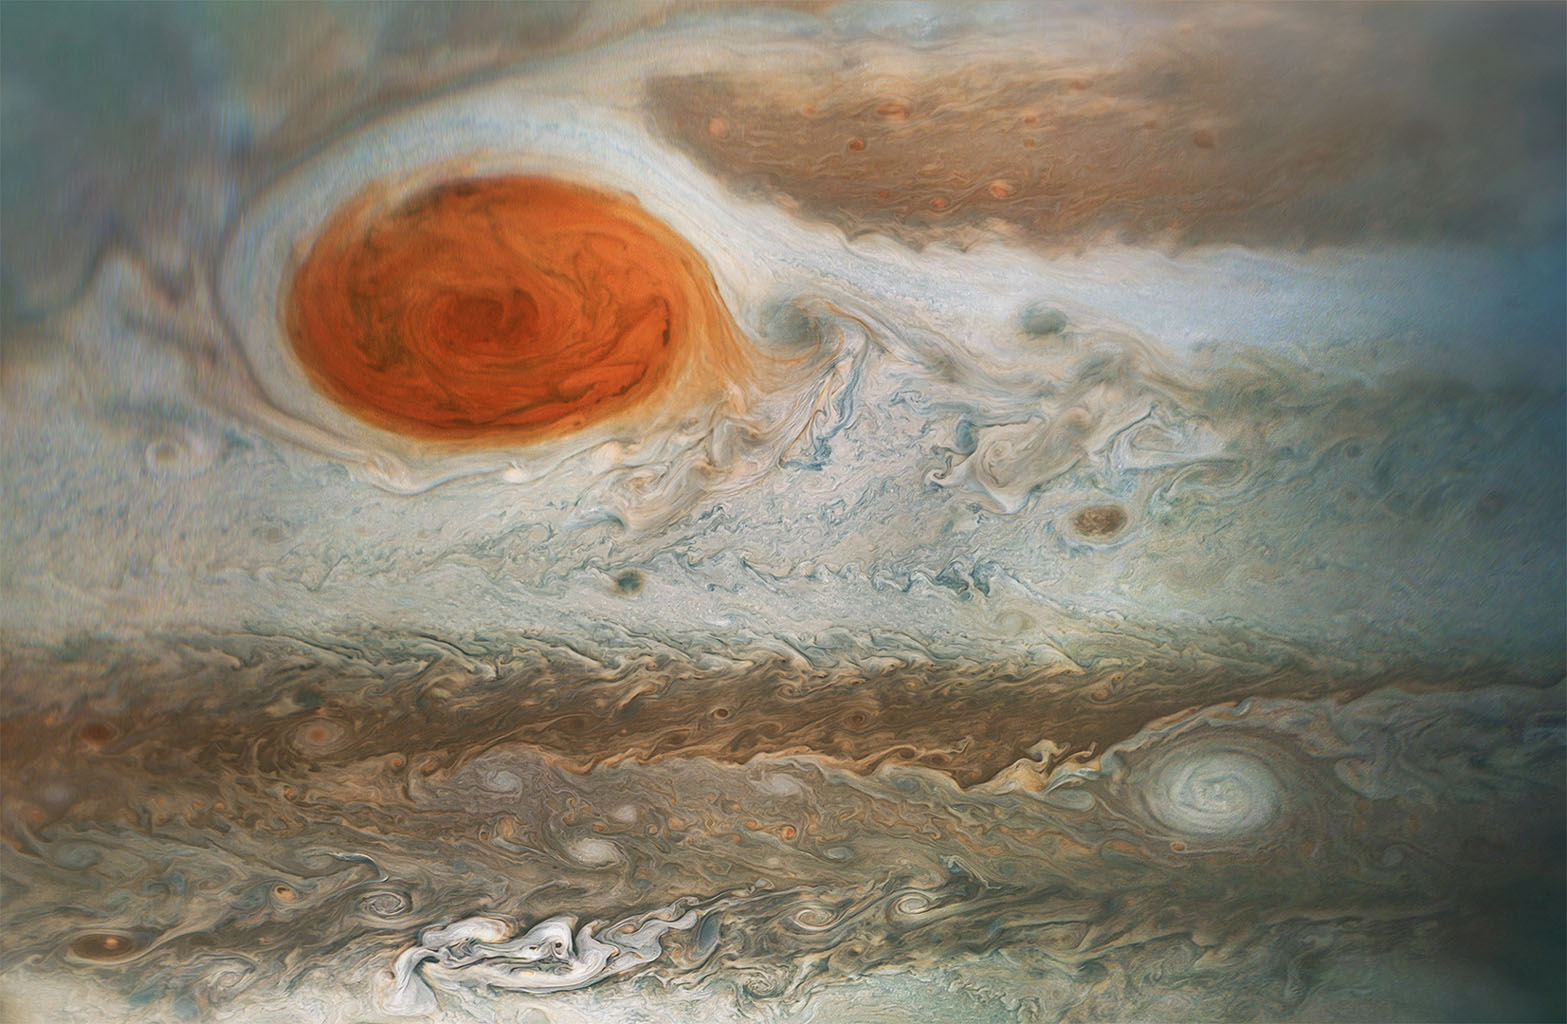 This image of Jupiter's iconic Great Red Spot and surrounding turbulent zones was captured by NASA's Juno spacecraft on April 1, 2018.